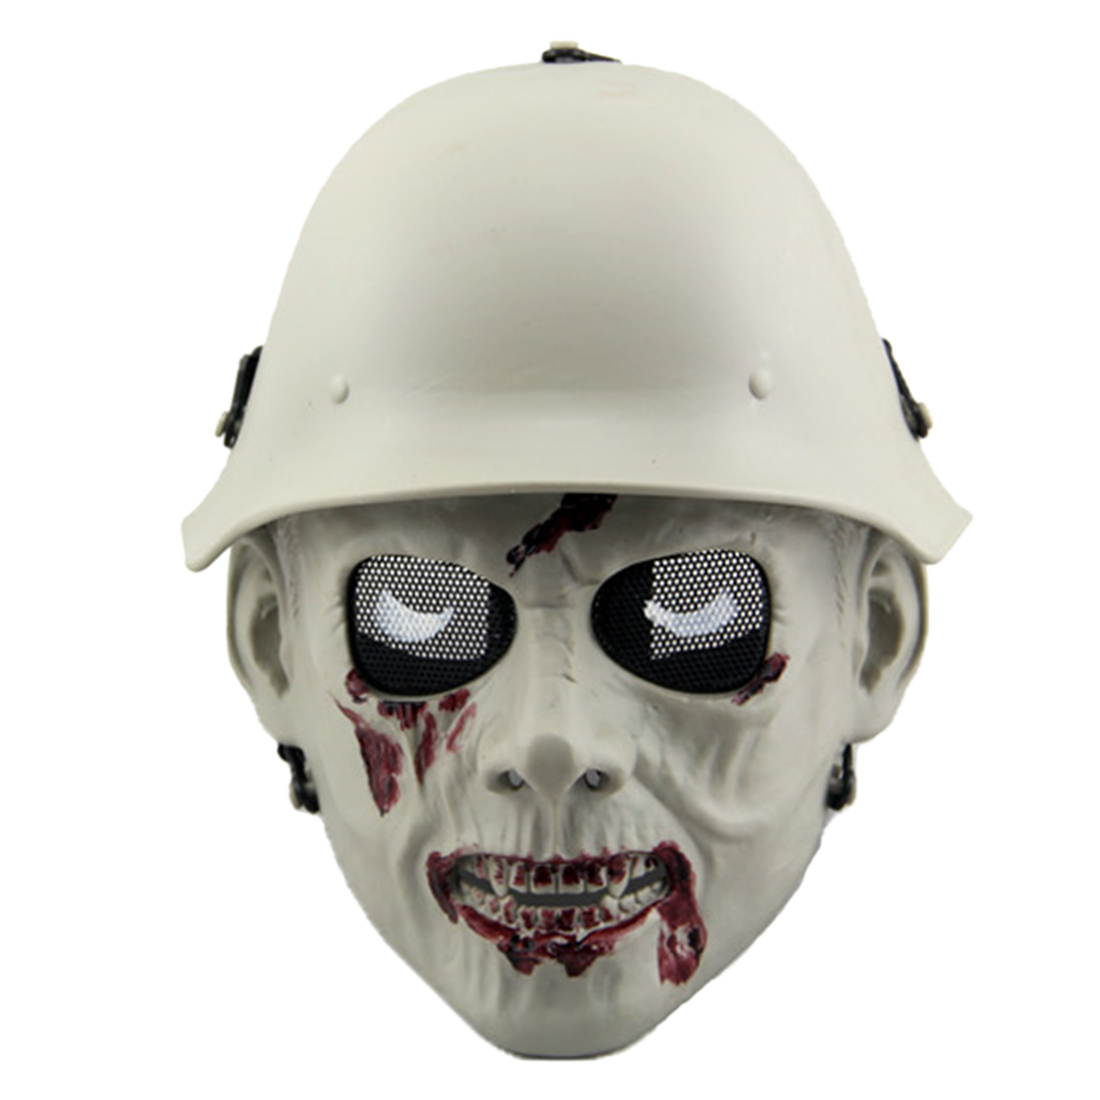 Outdoor Tactical Hunting Mask Adjustable Shock Resistance Protective Mask Military Field Zombie Mask For CS Halloween